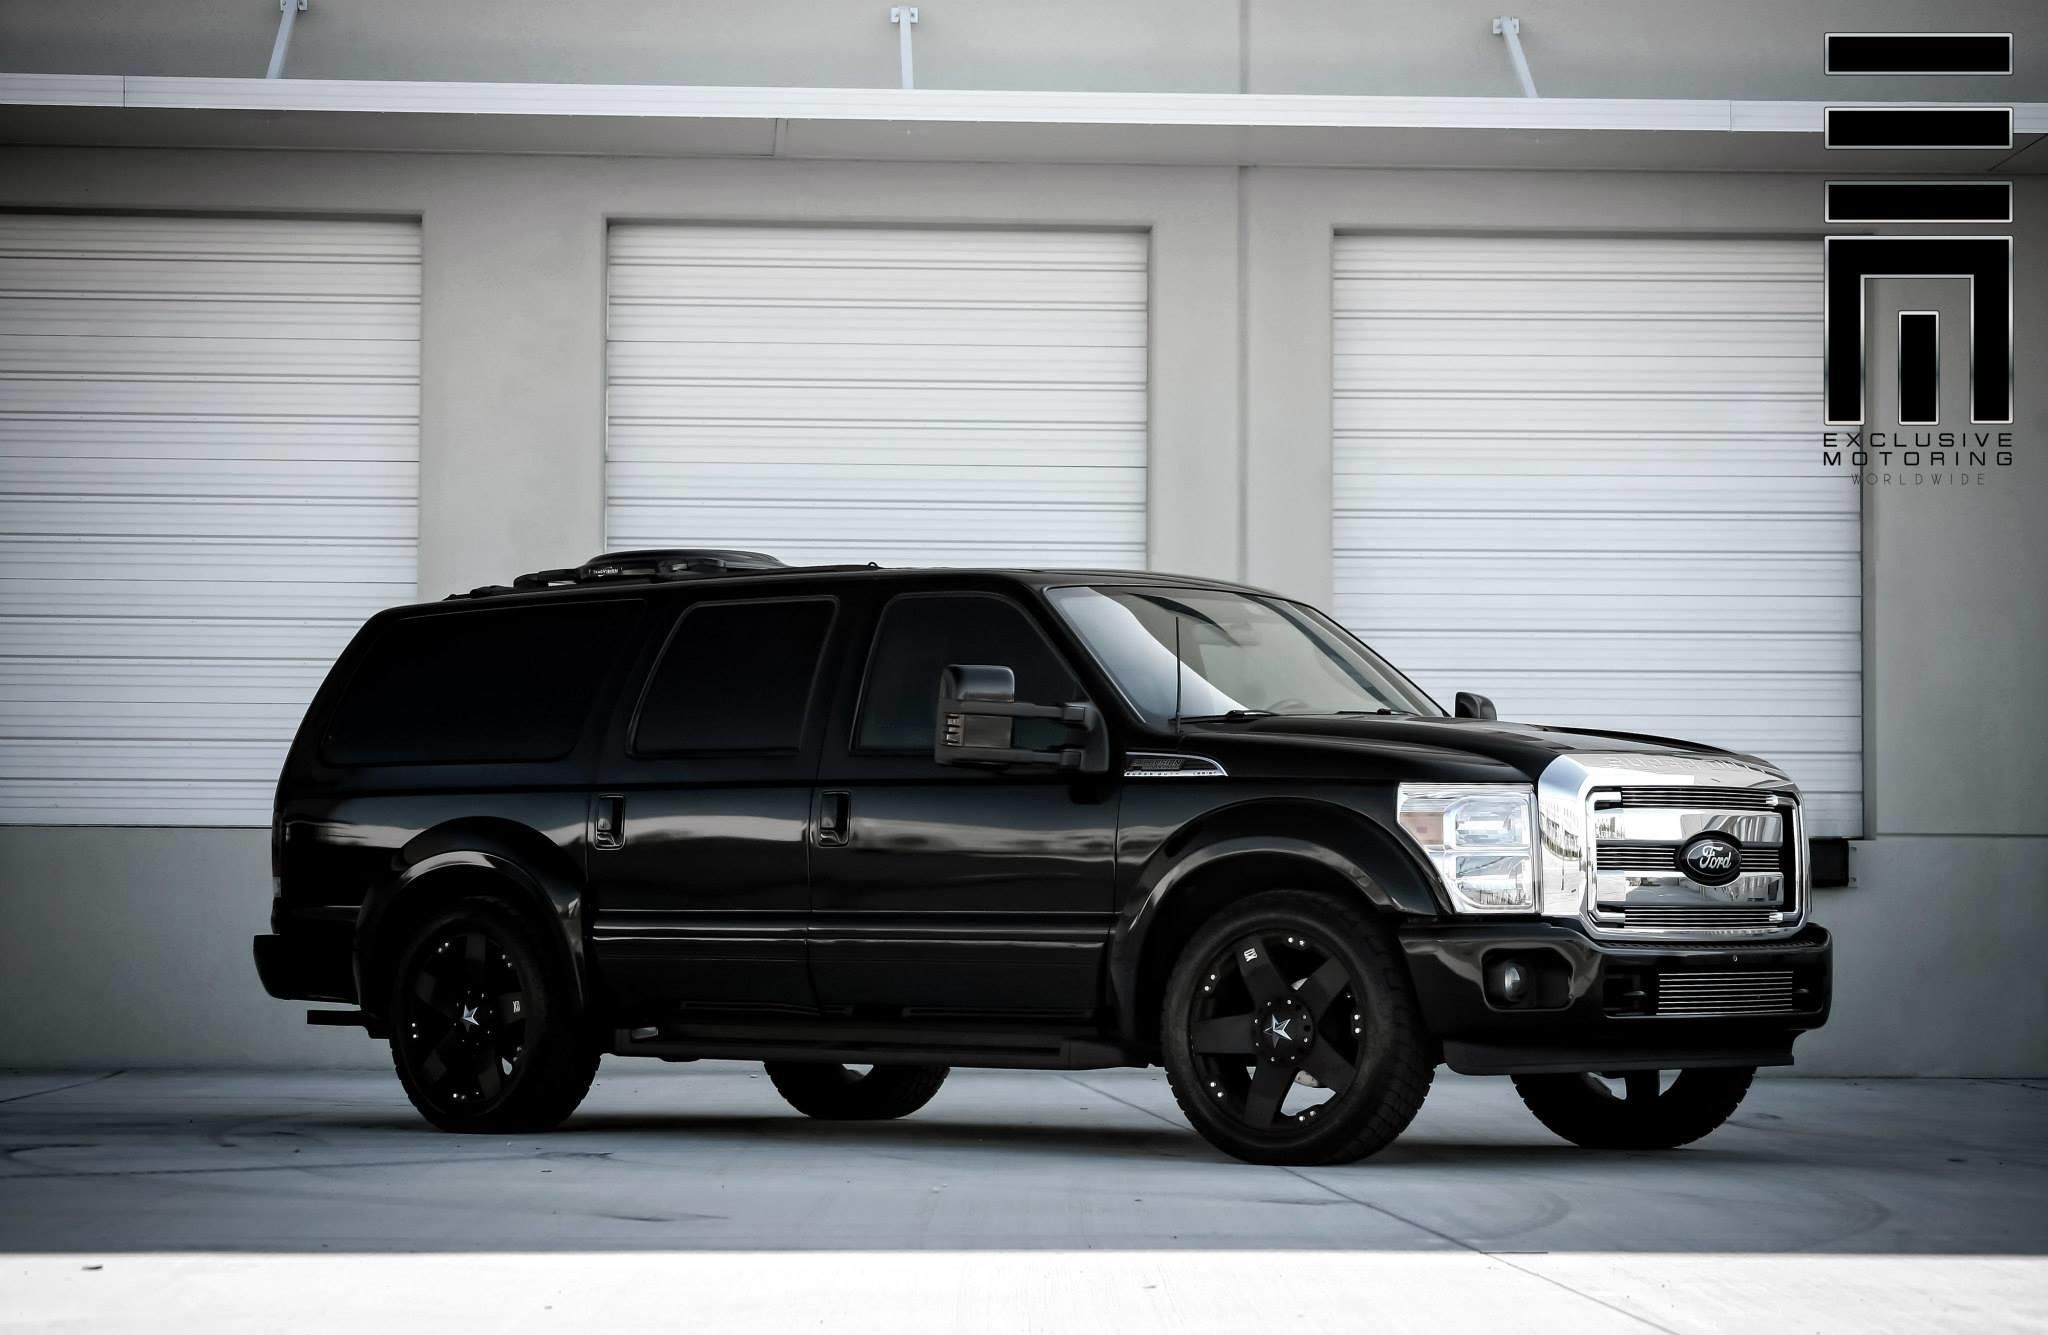 Ford Excursion With Full Limo Conversion Exclusive Motoring Photo 10447 Ford Excursion Ford Excursion Diesel Excursions